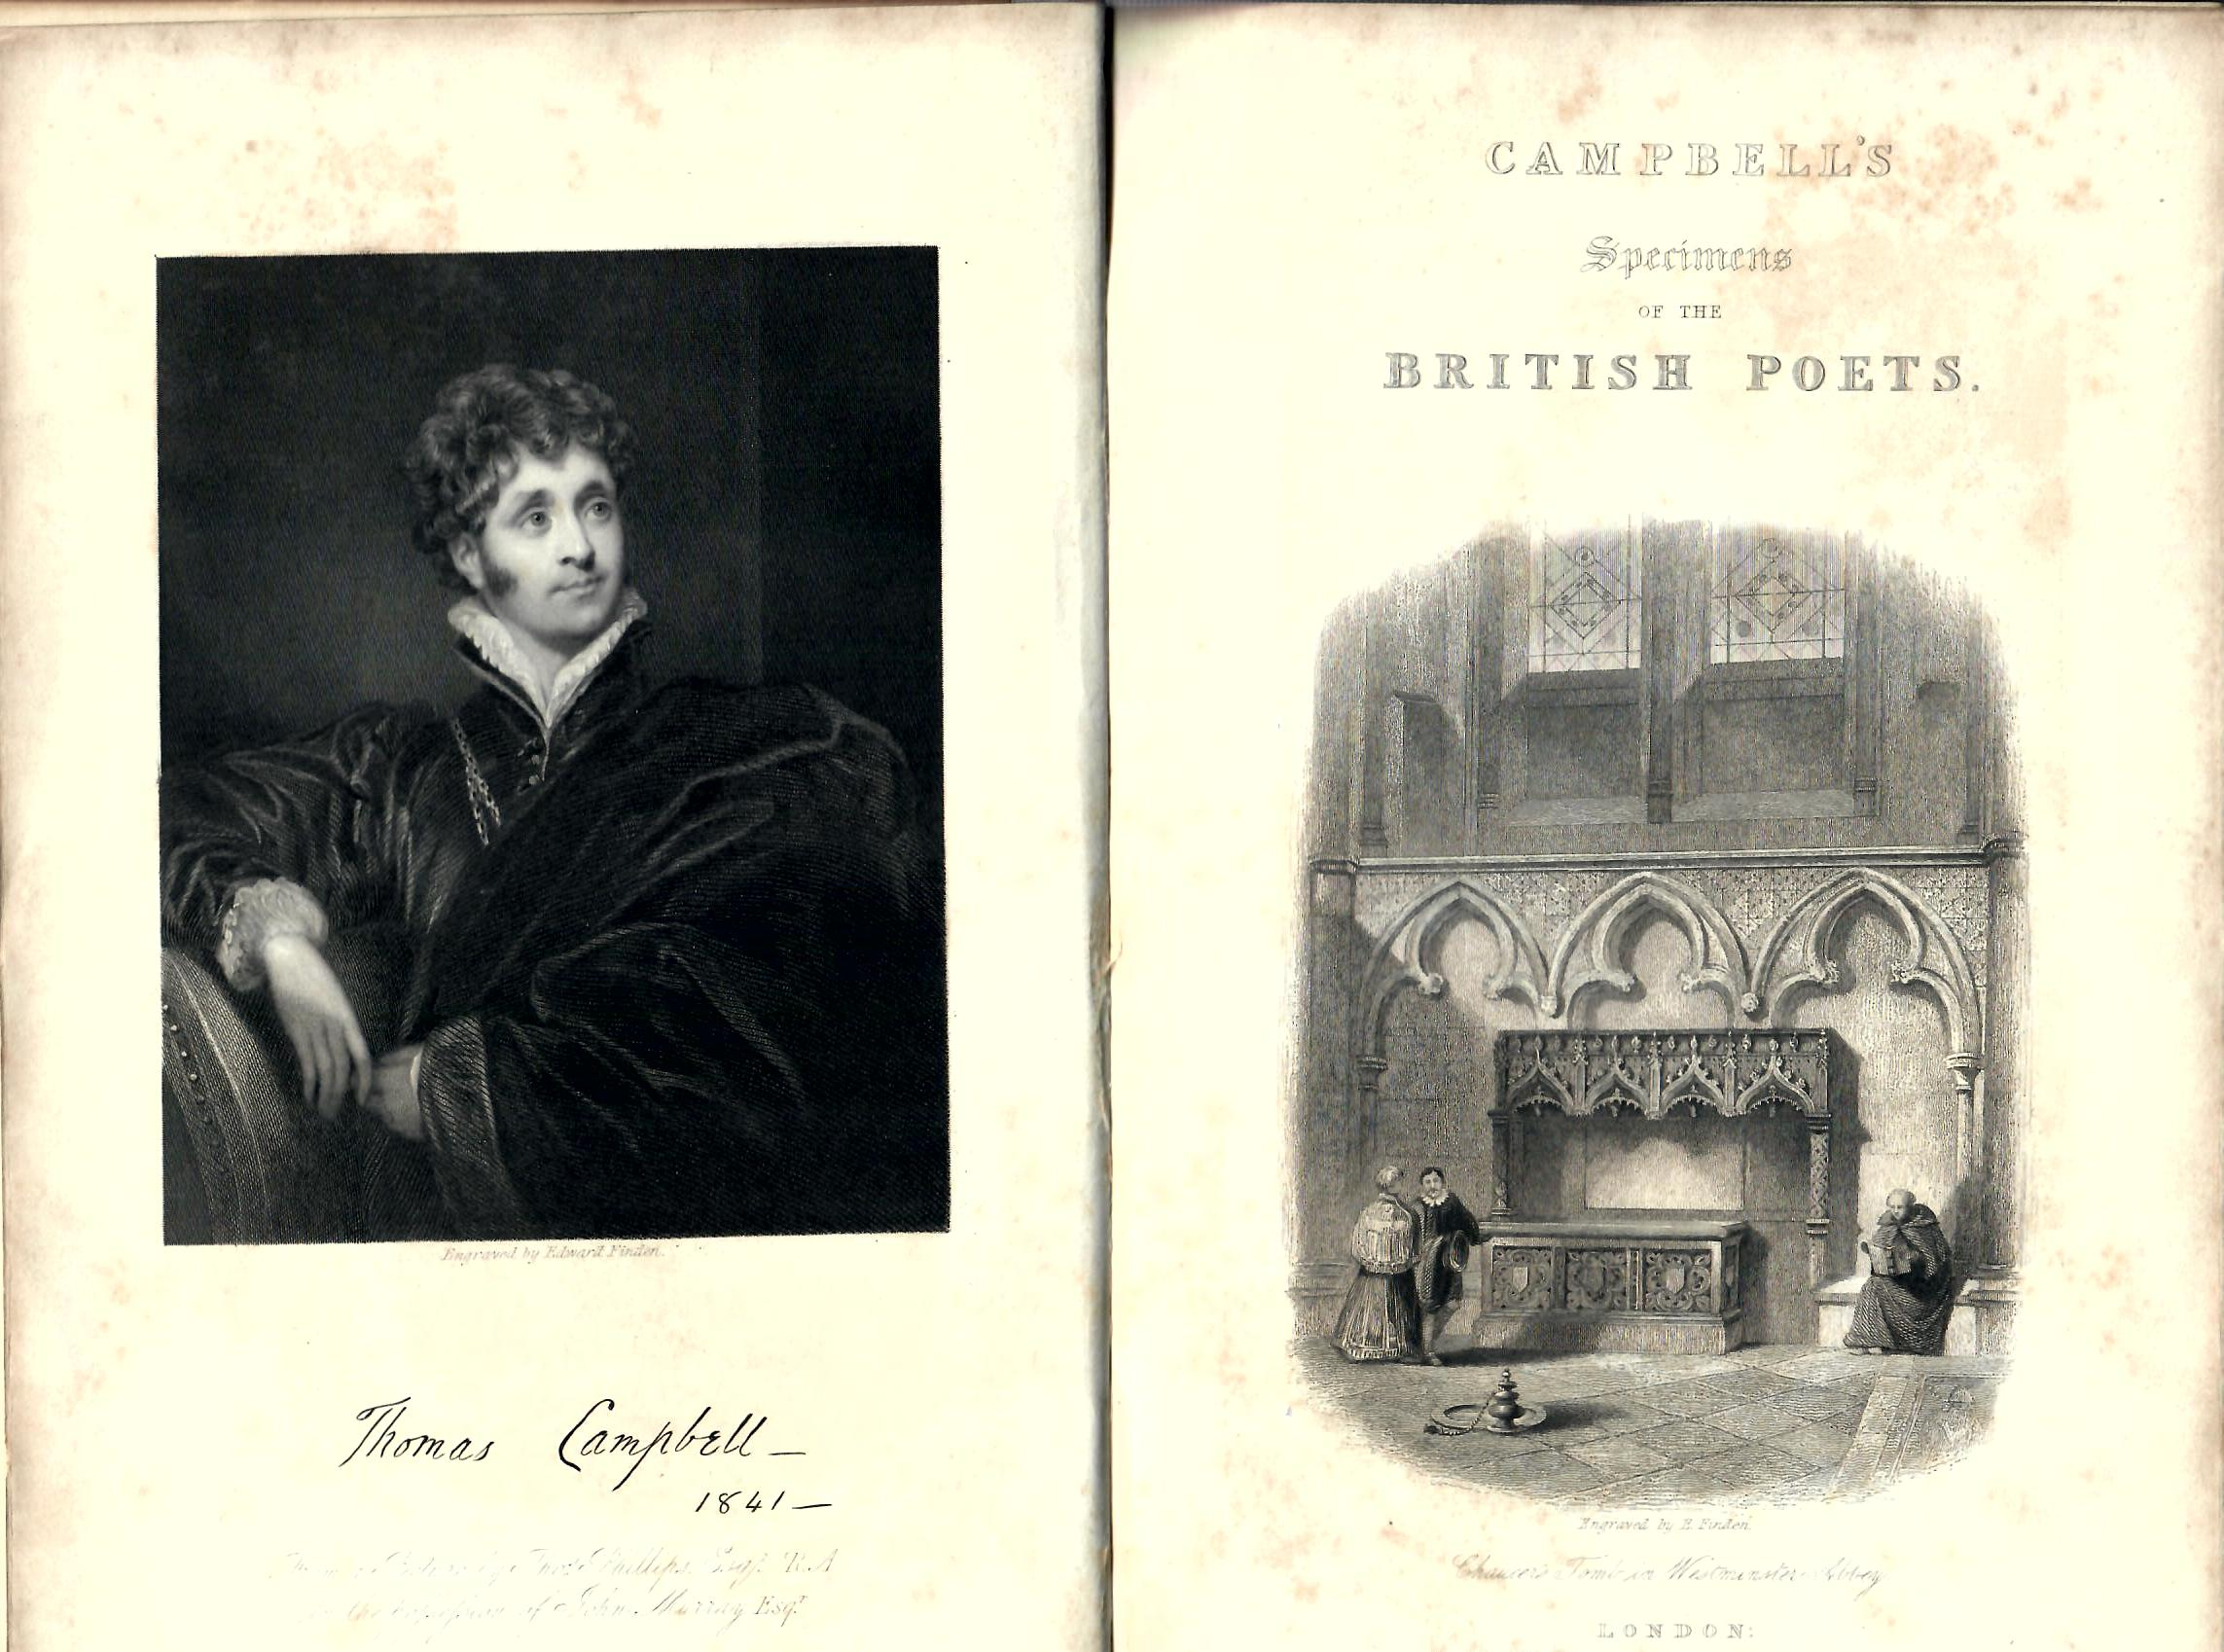 Specimens of the British Poets; with biographical and critical notices, and an essay on english poetry by Thomas Campbell, ESQ : a new edition : John Murray, Albemarle Street, London MDCCCXLI (1841), schönes Exemplar, Ledereinband mit Goldschnitt keine Angabe